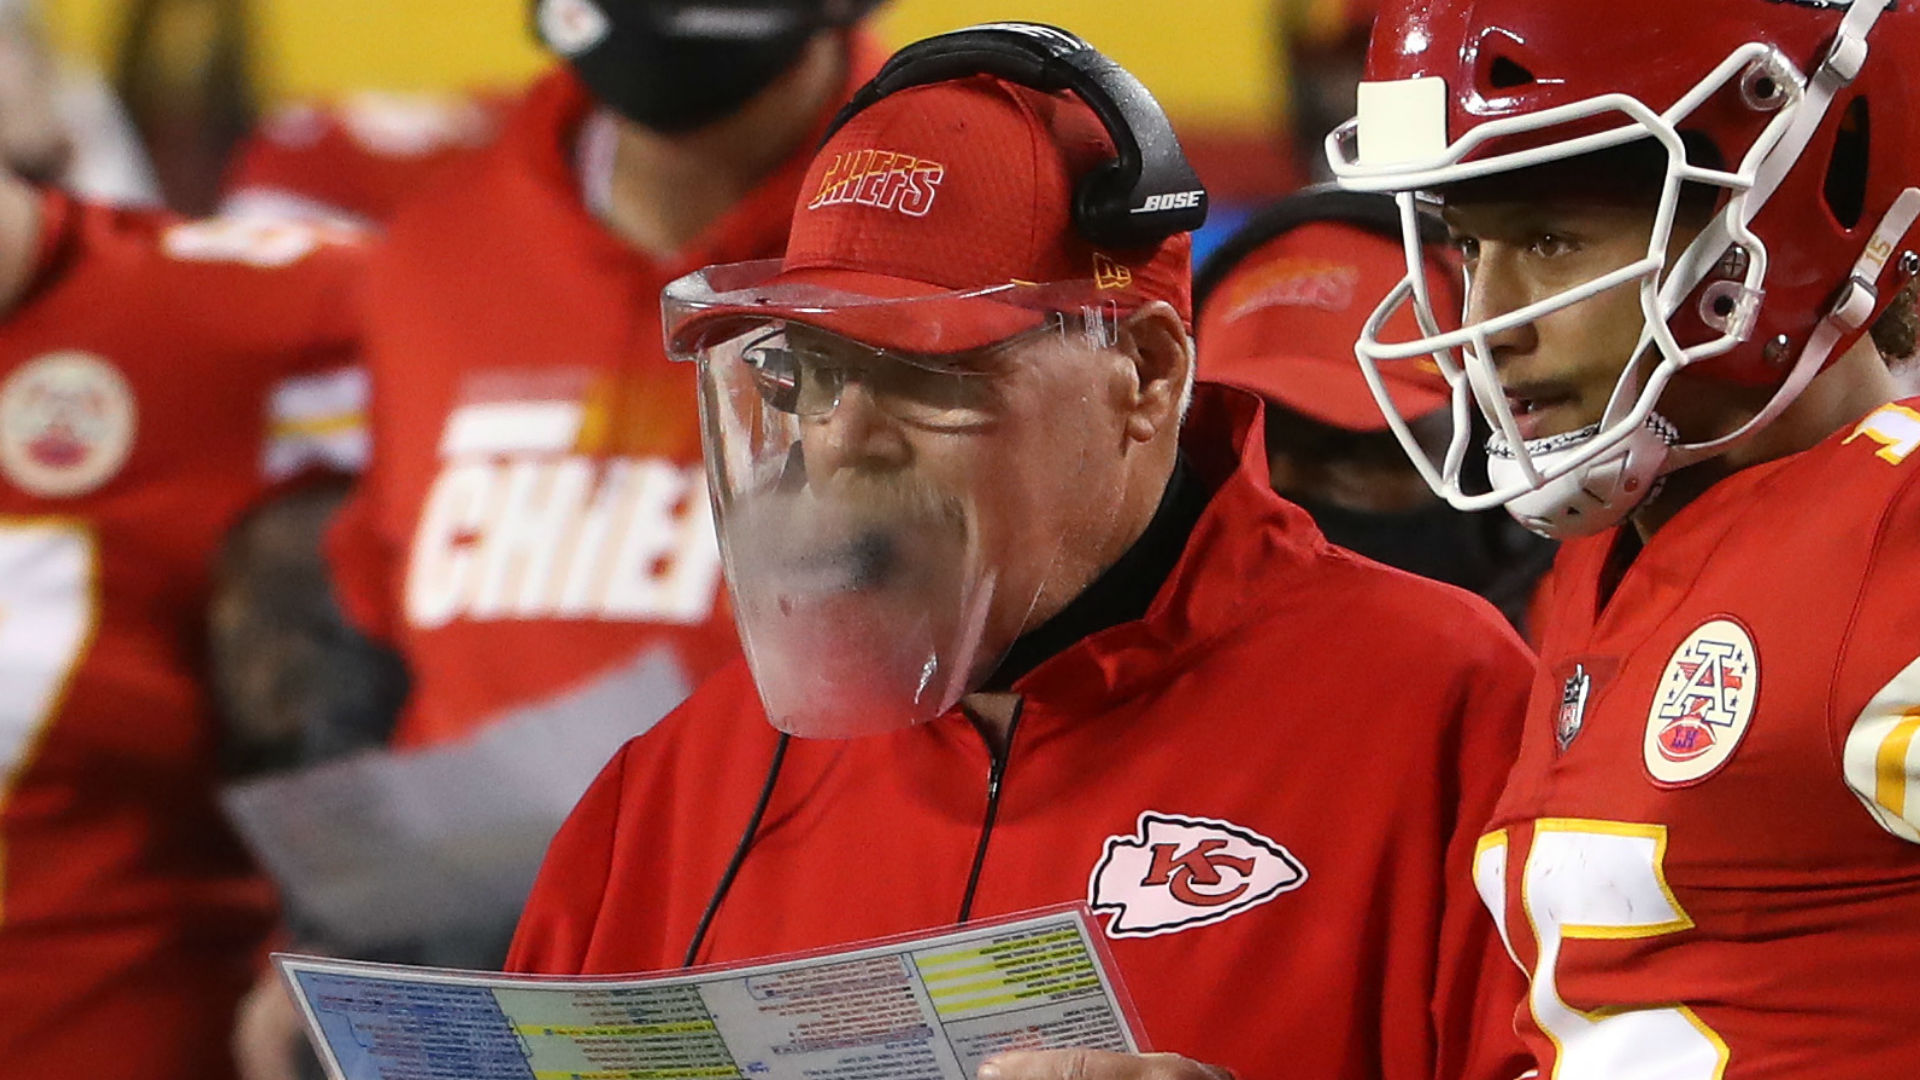 Andy Reid's foggy face shield steals the show on NFL opening night; Twitter reacts accordingly